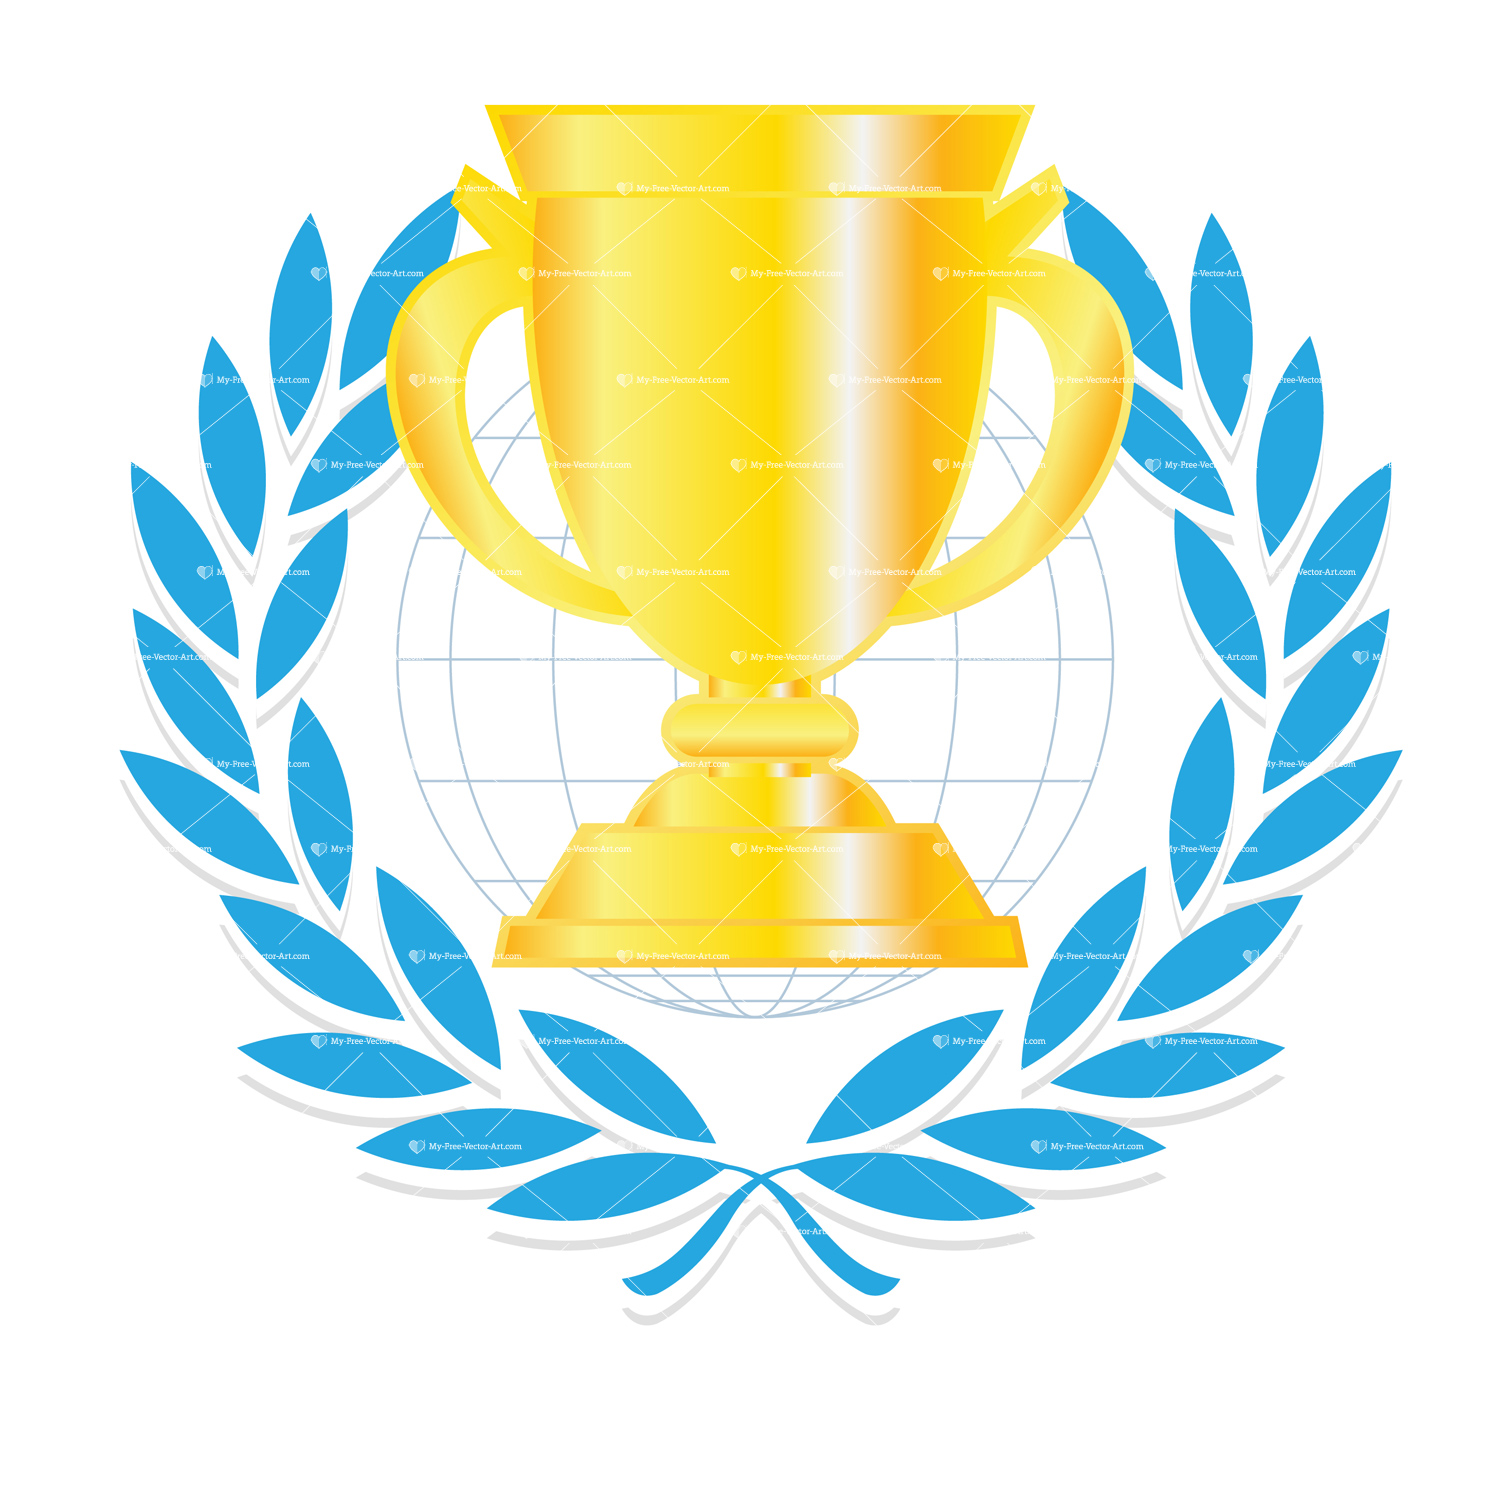 Images for trophy clipart